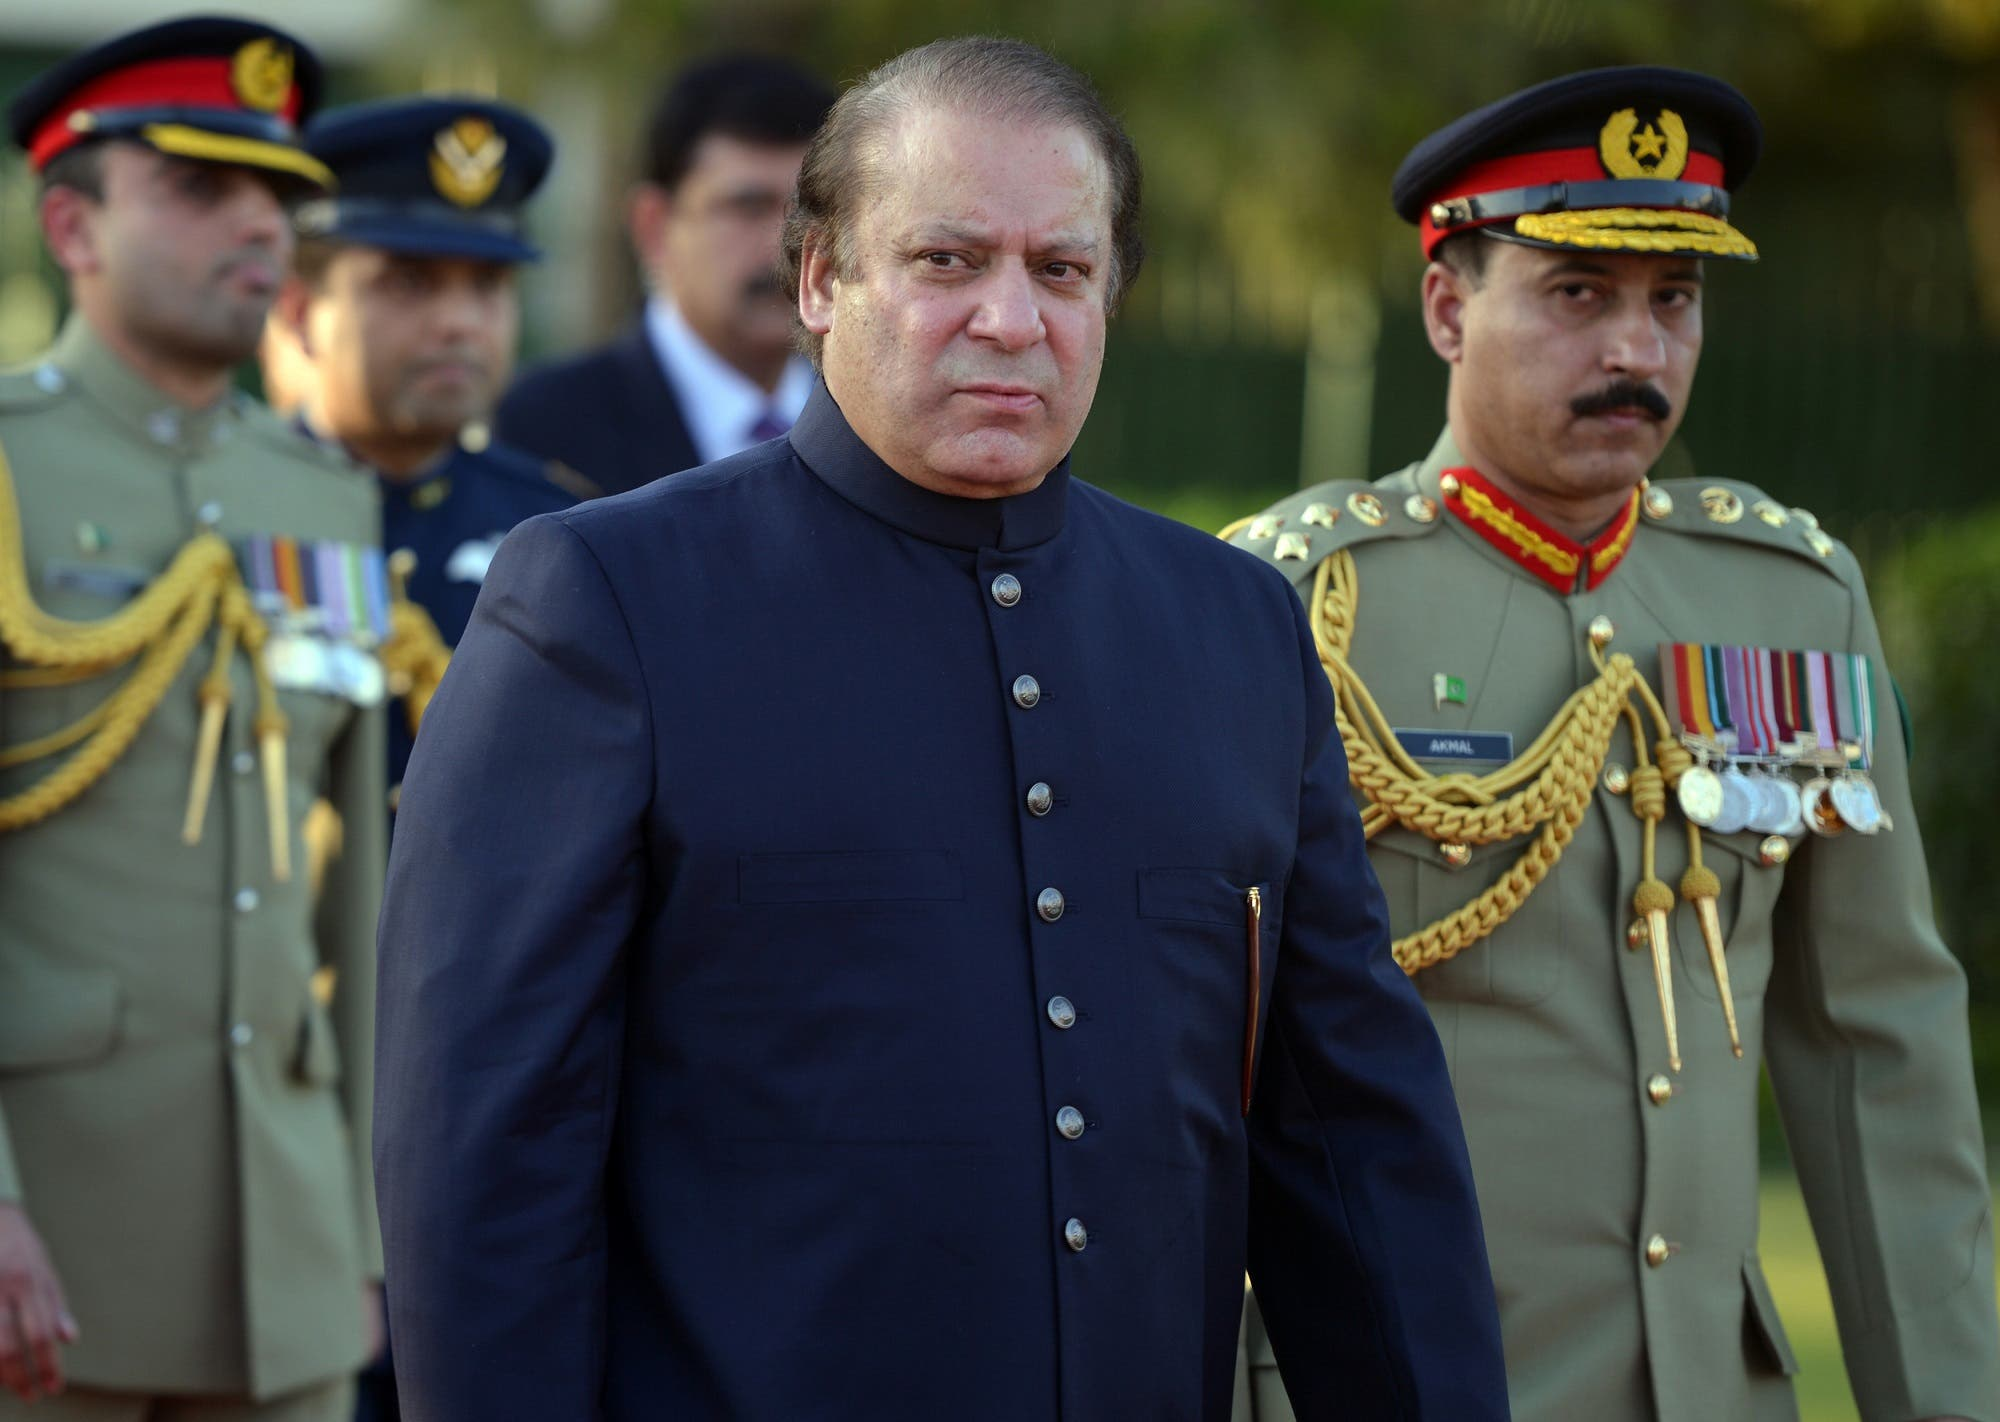 In this file photograph taken on June 5, 2013, Nawaz Sharif looks on after inspecting a guard of honor during a welcoming ceremony in Islamabad. (AFP)